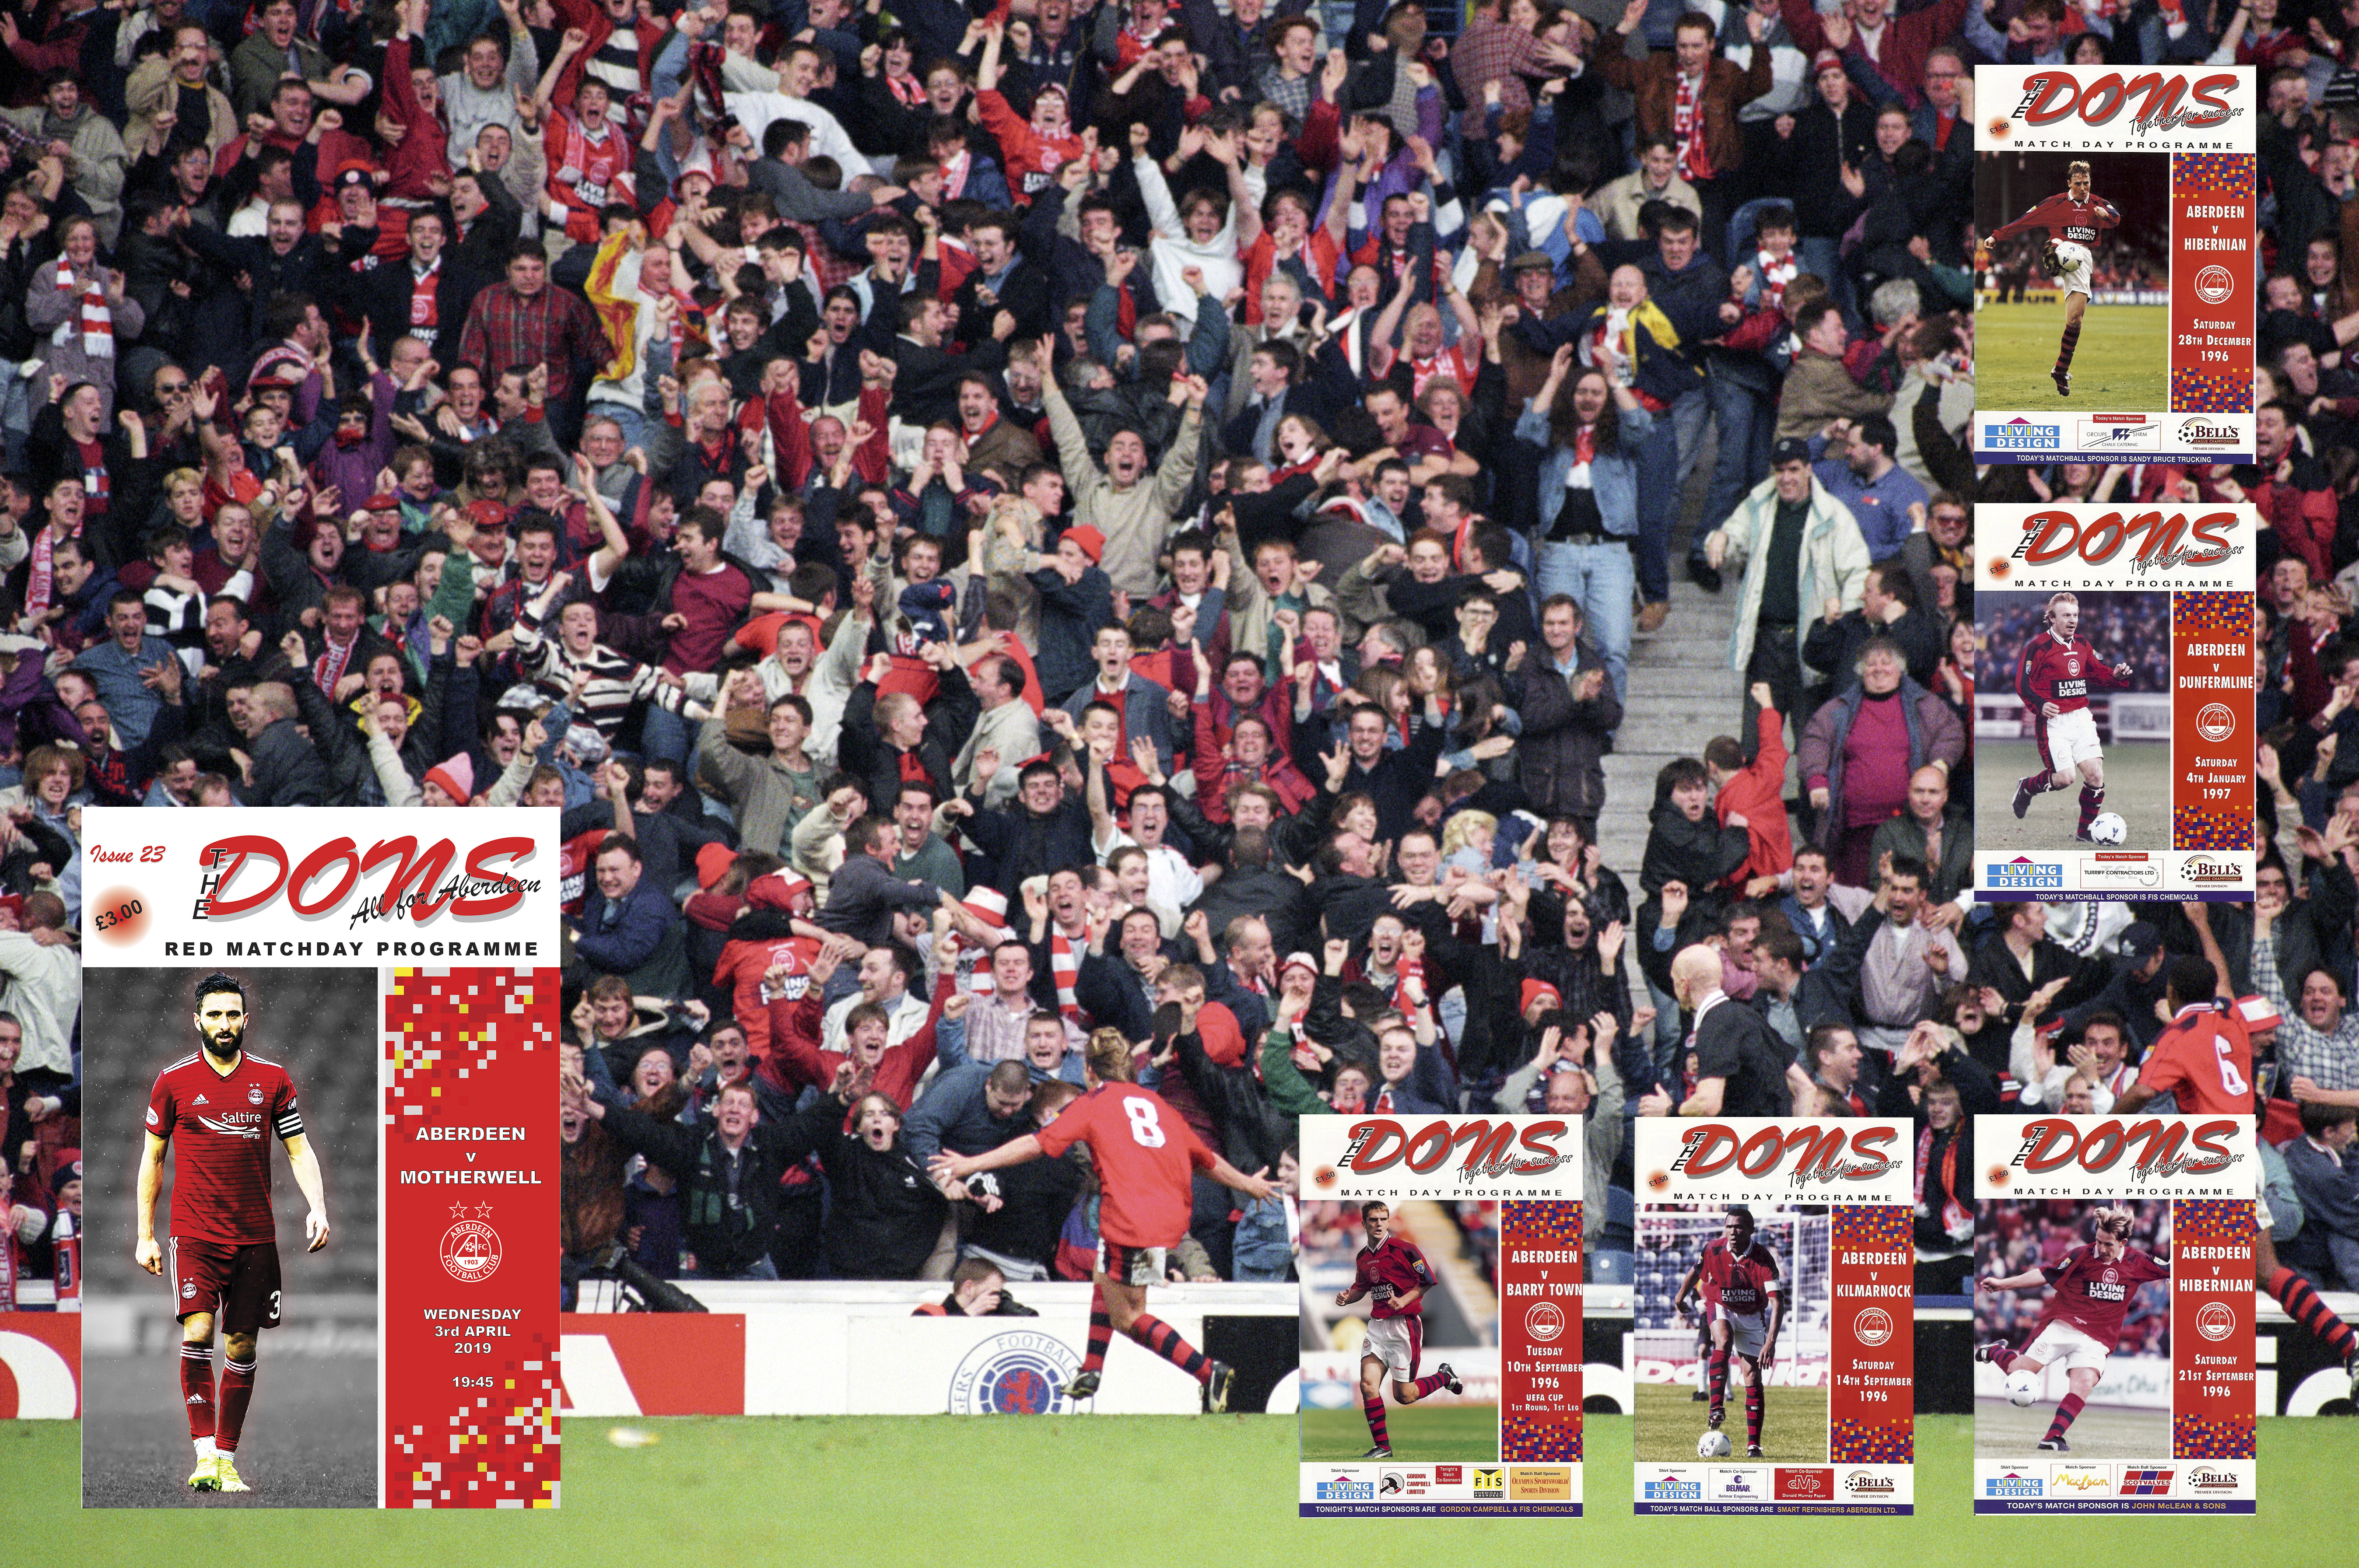 e3f5d30cf39 Aberdeen FC   Red Matchday Issue 23   Preview